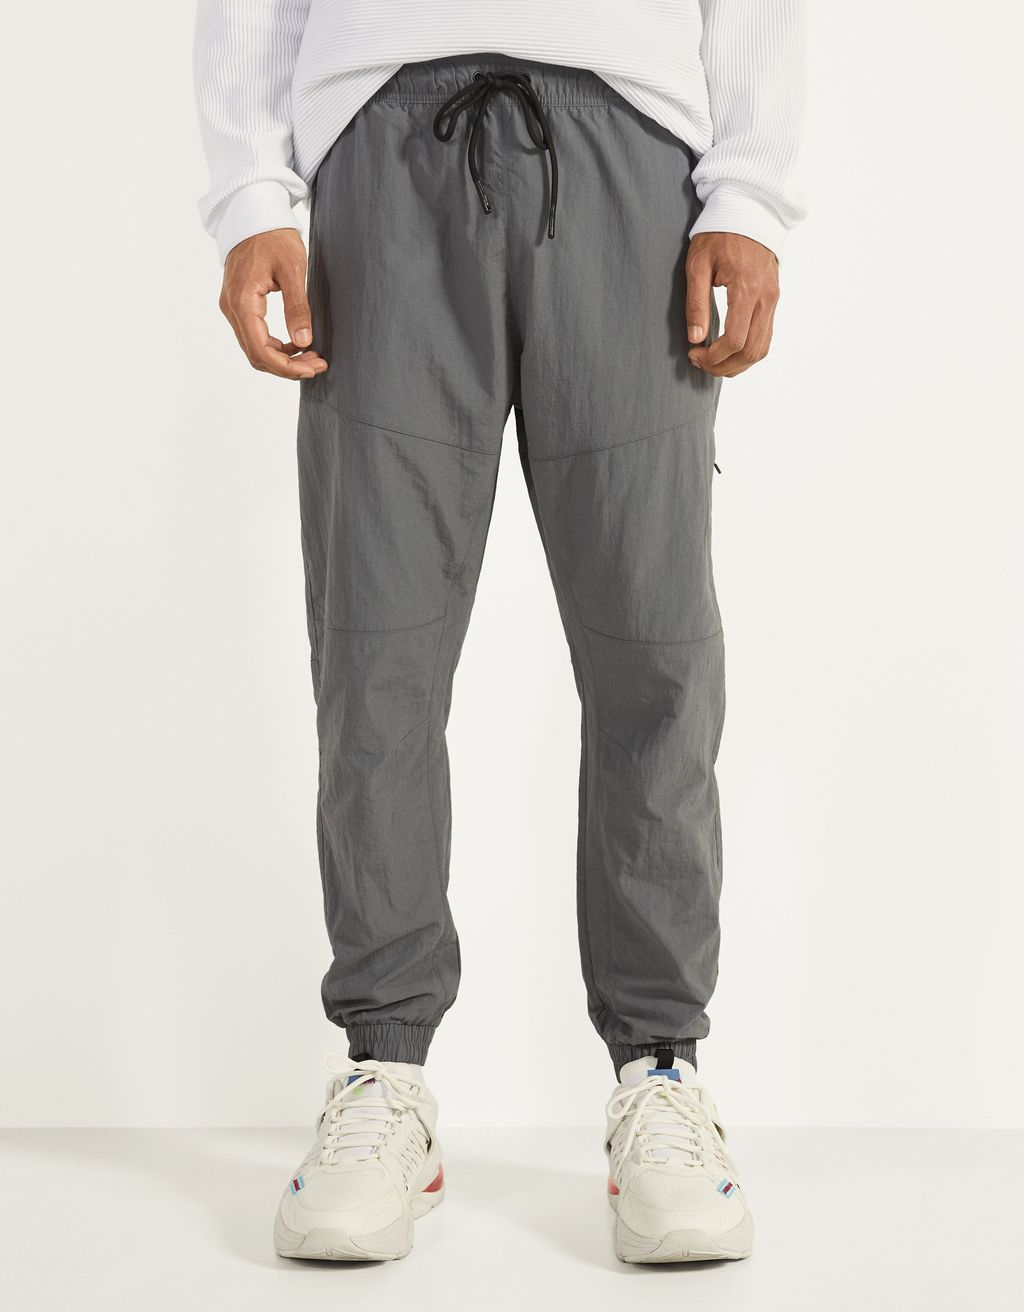 Nylon jogging trousers